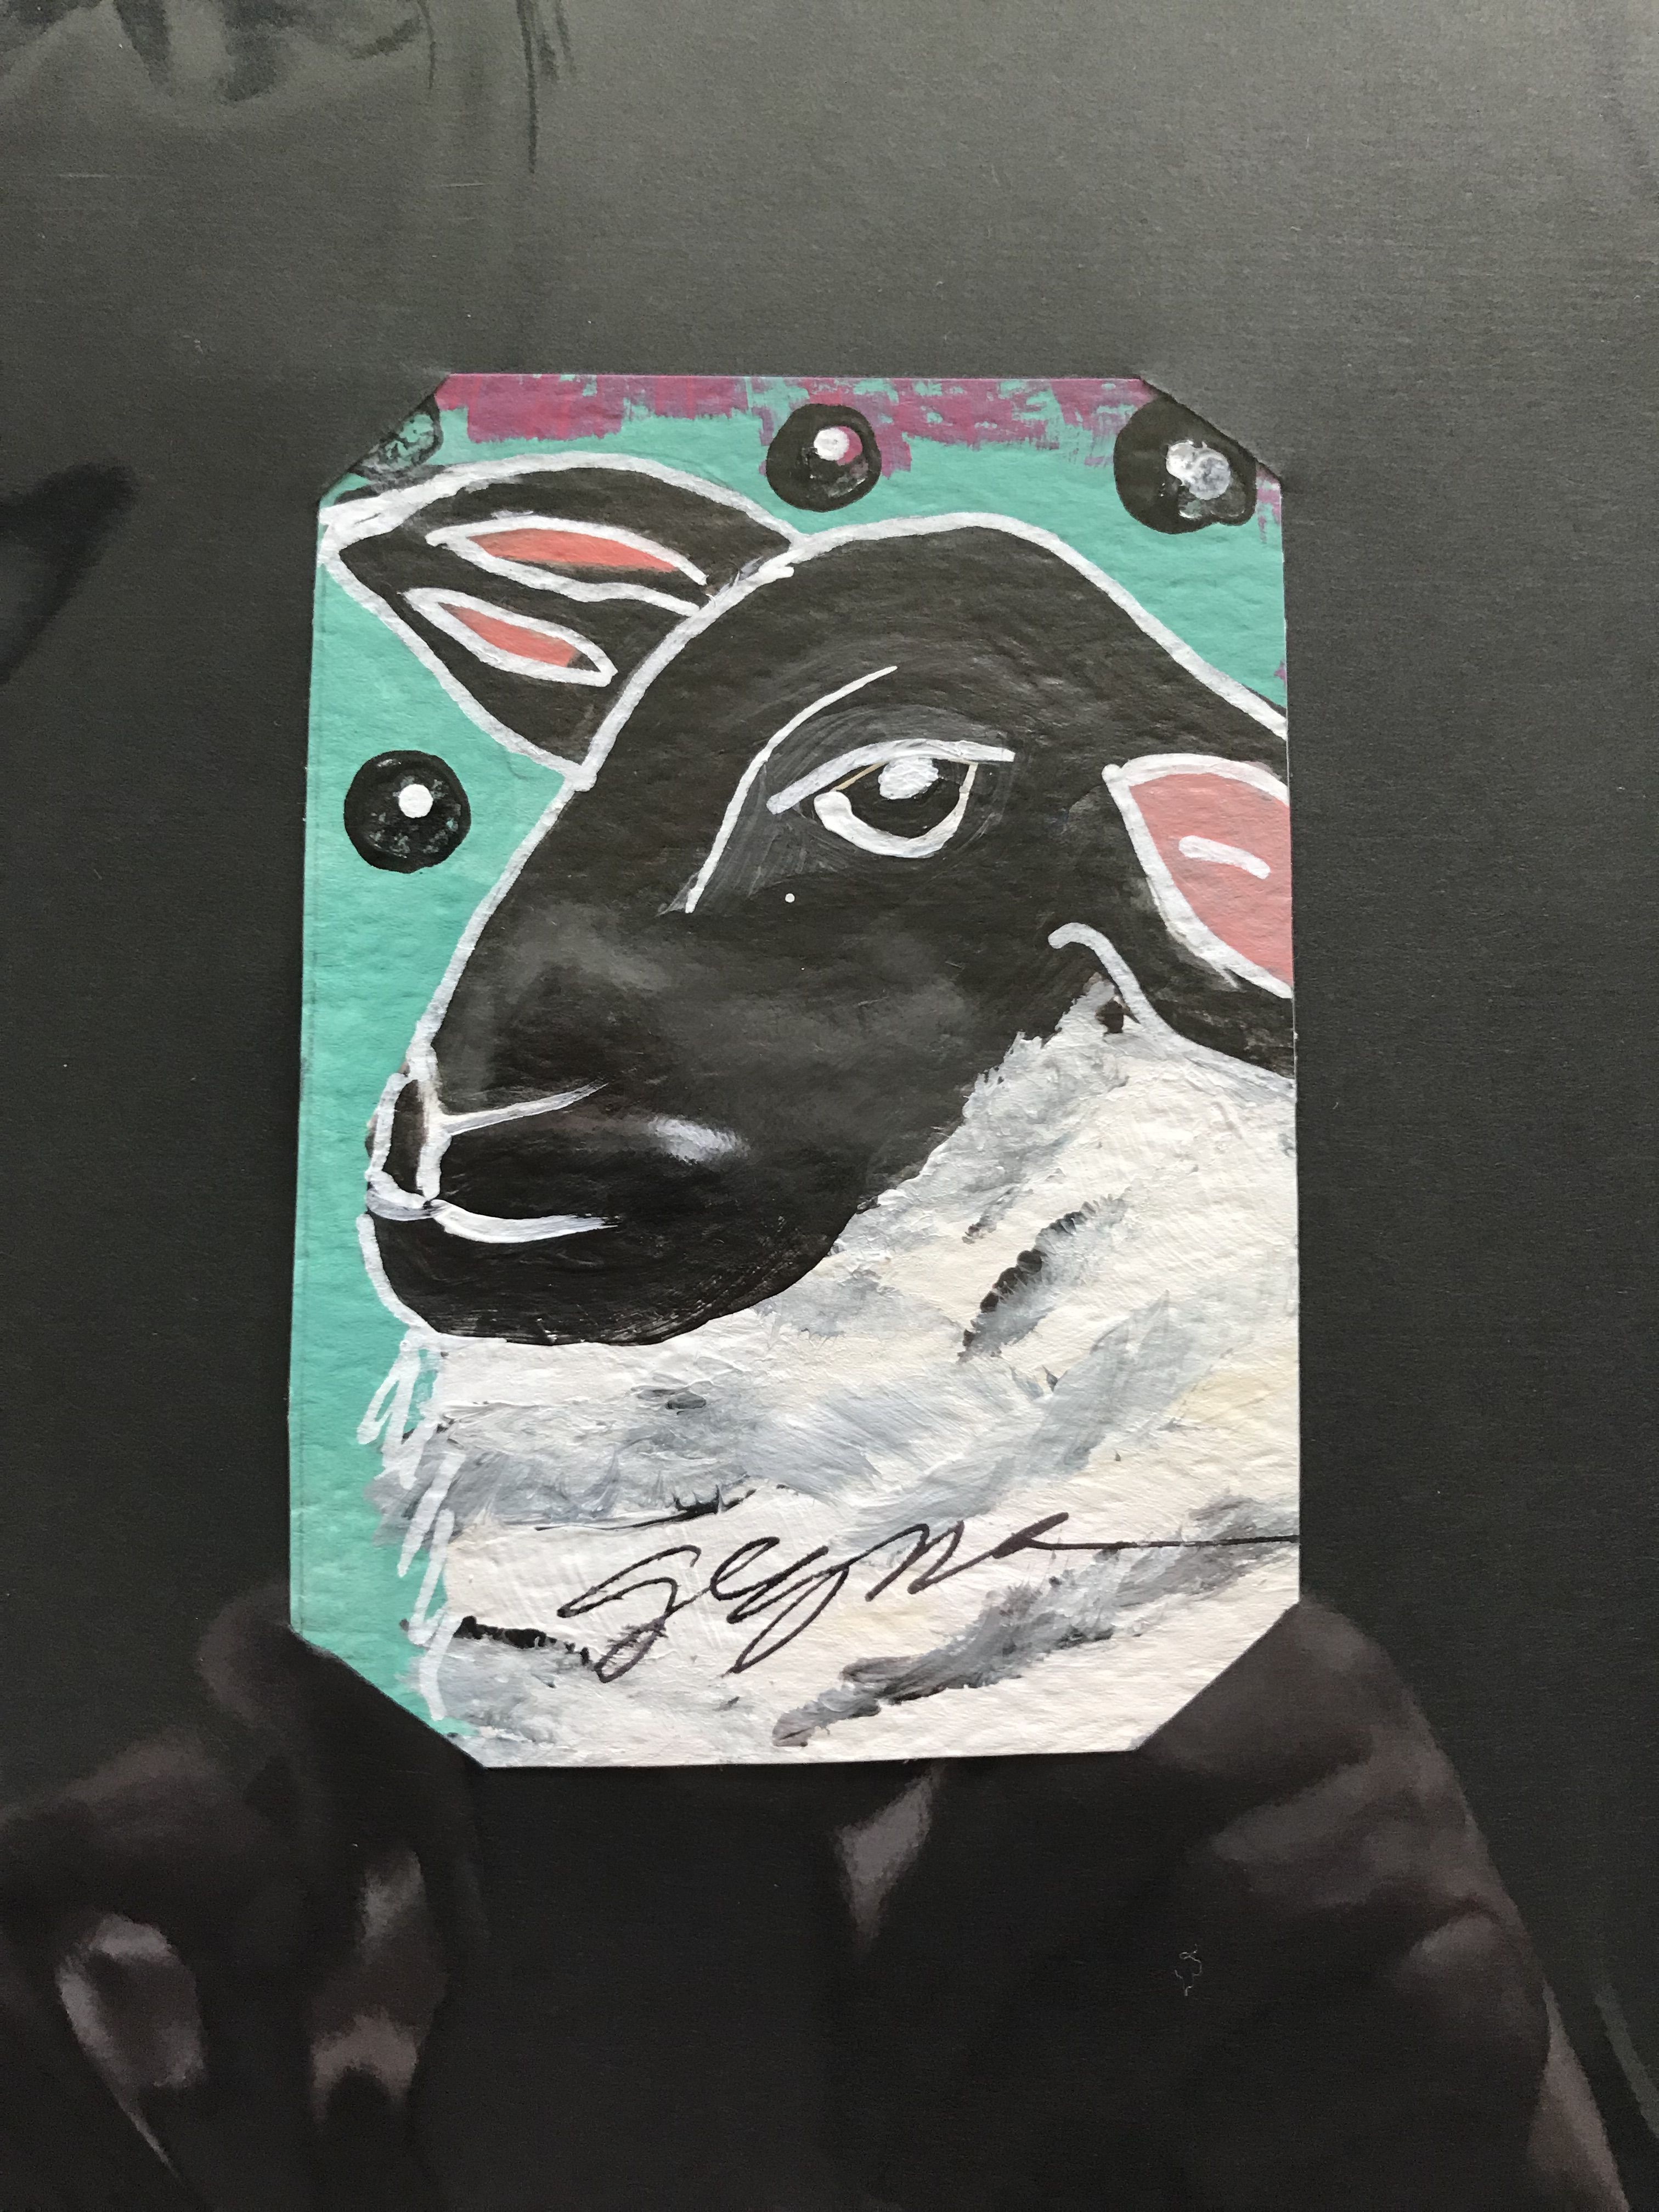 Pin By Artist Suzanne Gegna On Artist Trading Cards Black Faced Sheep Artist Trading Cards Folk Art